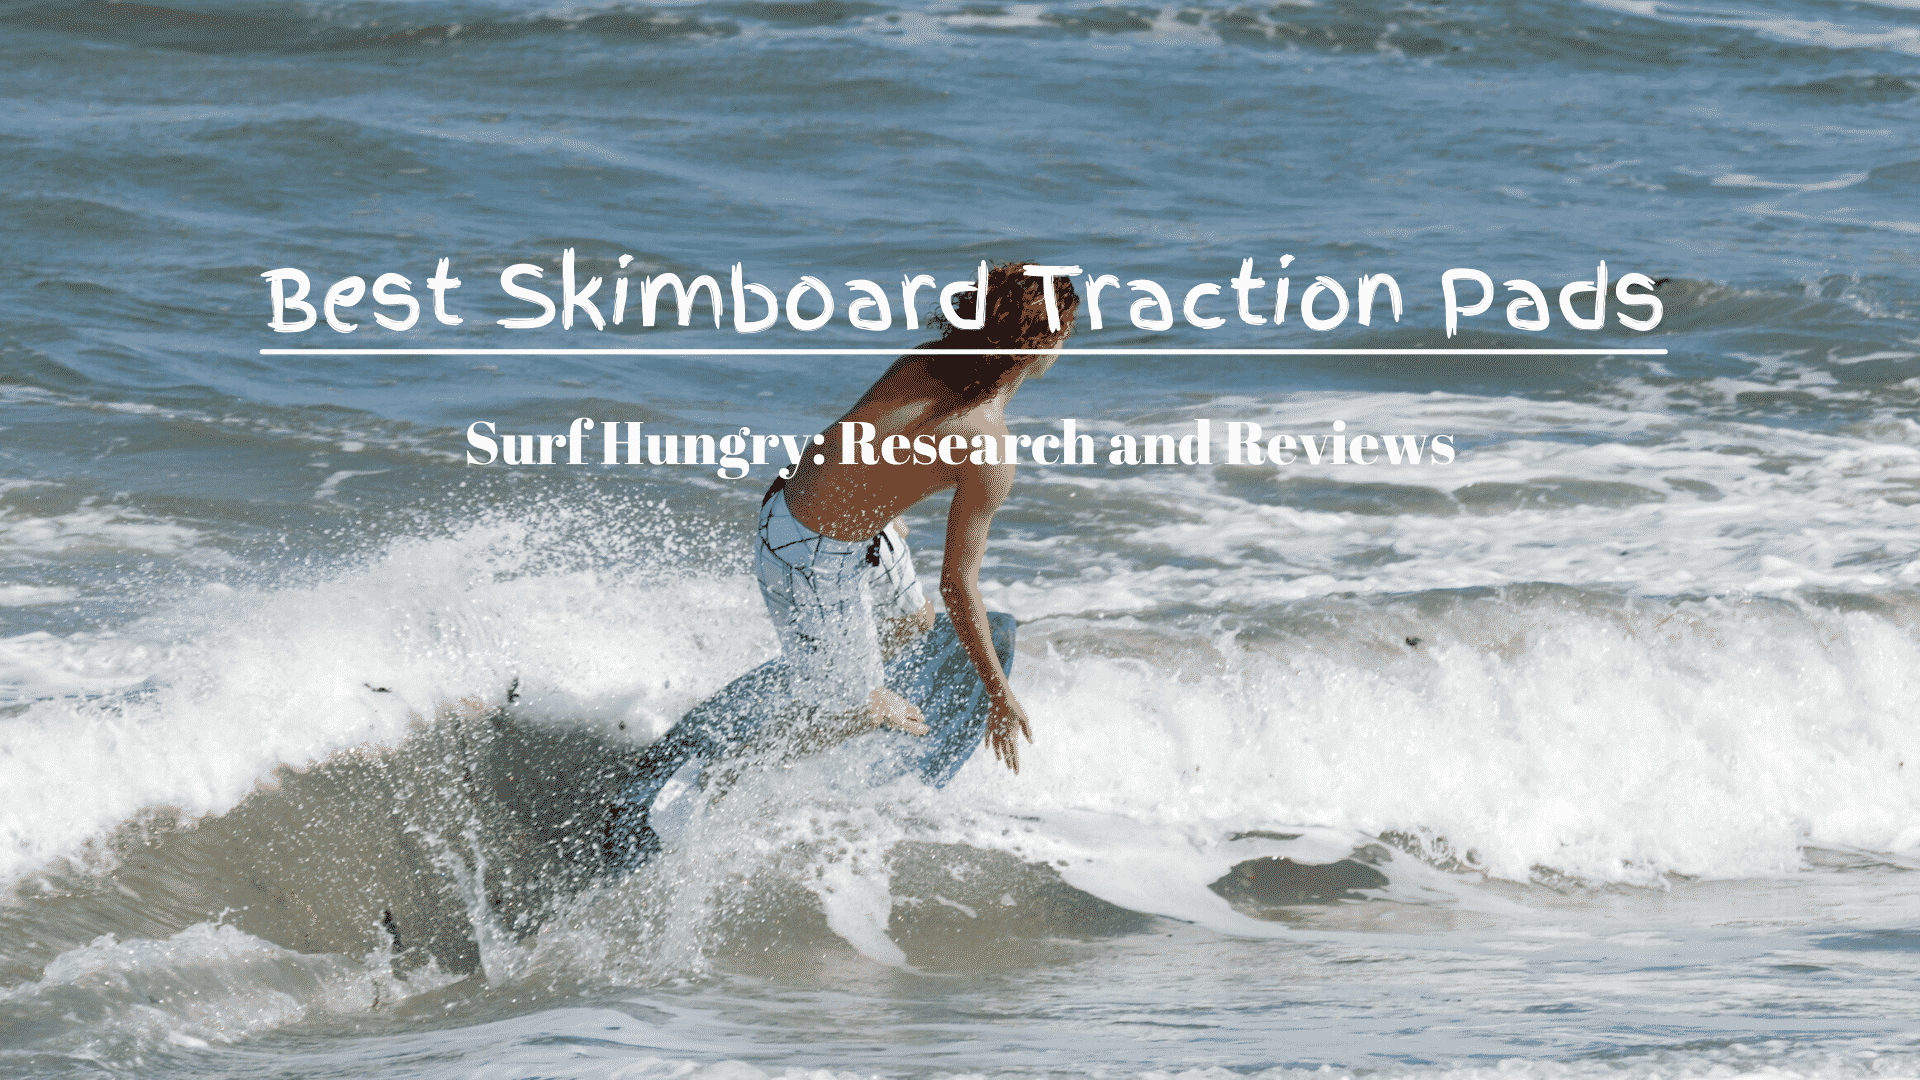 Best Skimboard Traction Pads